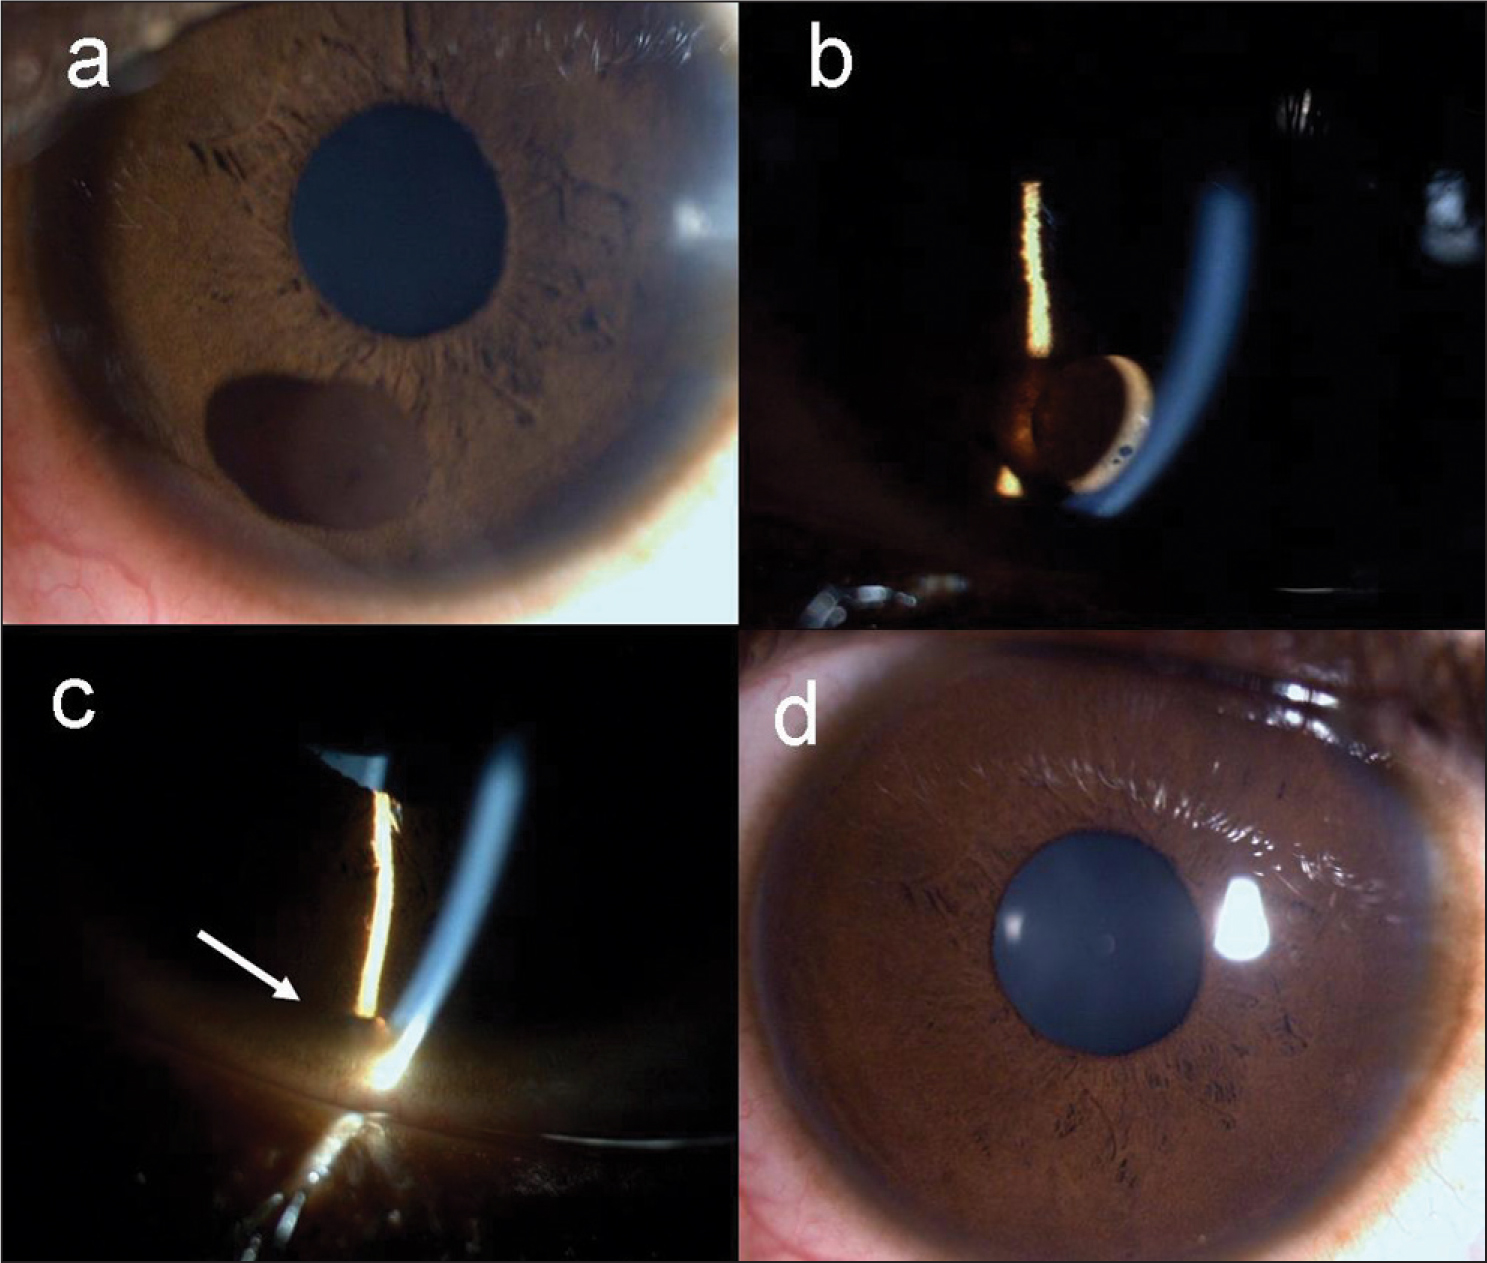 (A) Iris Stromal Cyst. (B) Slit-Lamp View Showing Iris Touching the Back of the Cornea. (C) Collapsed Cyst (arrow) After the Nd:YAG Laser Treatment. (D) At 2 Weeks of Follow-Up.